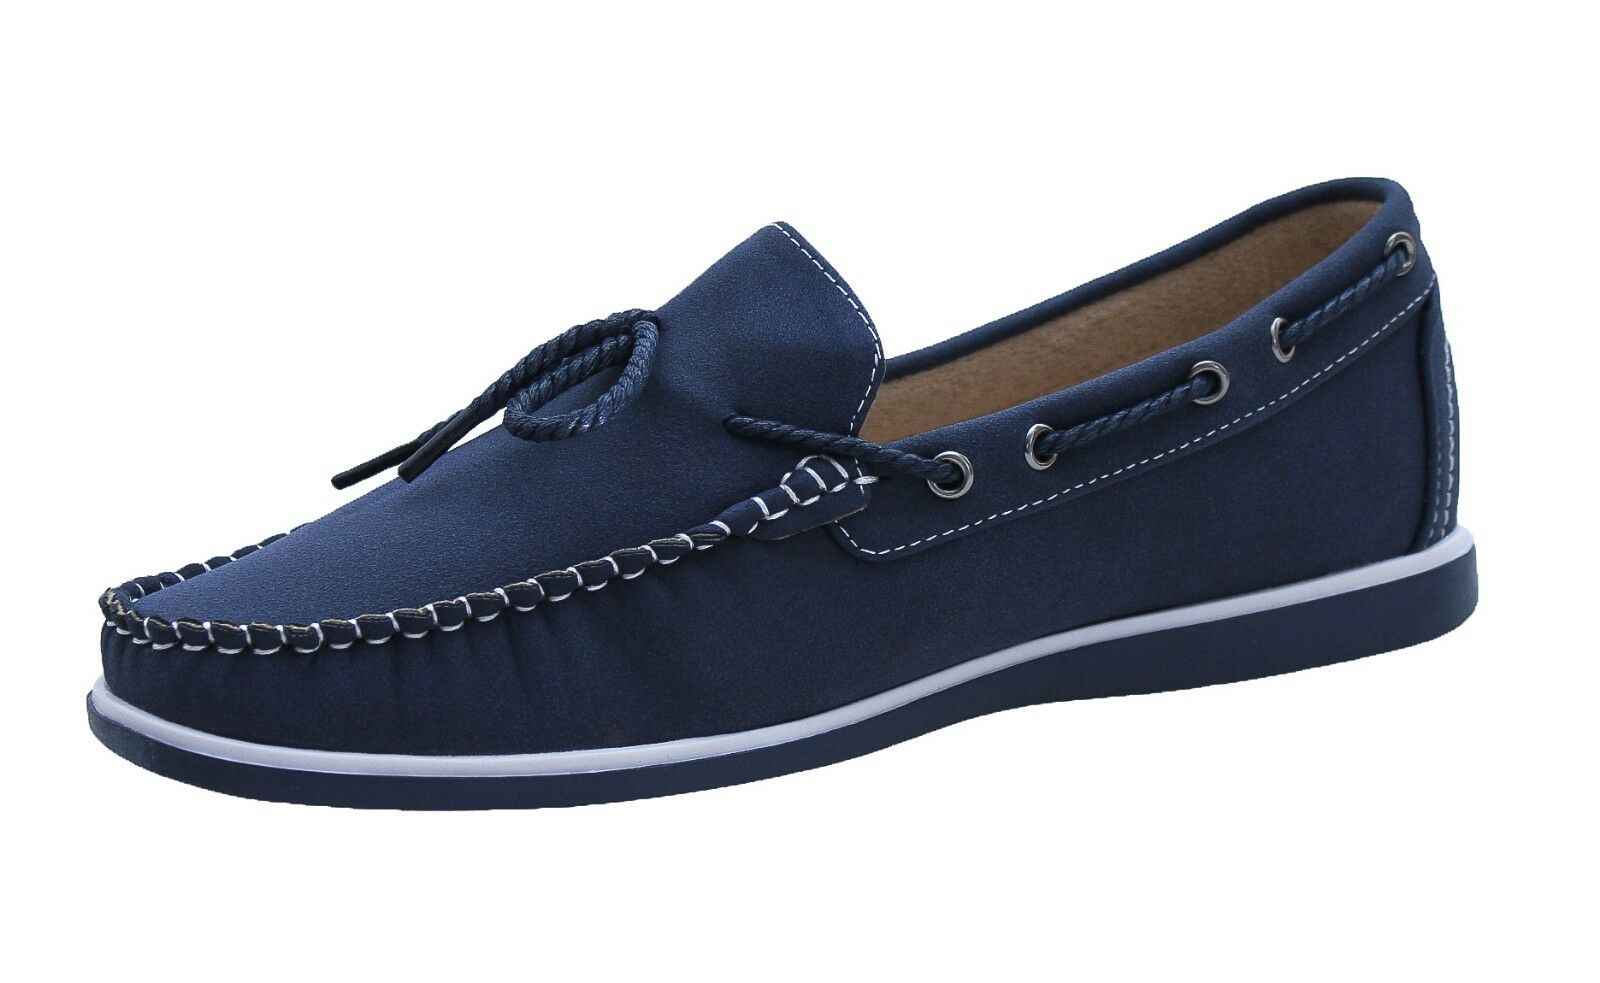 LOAFERS MEN SNEAKERS SPRING blueE CASUAL SHOES LOW ESPADRILLES da 40 a 45